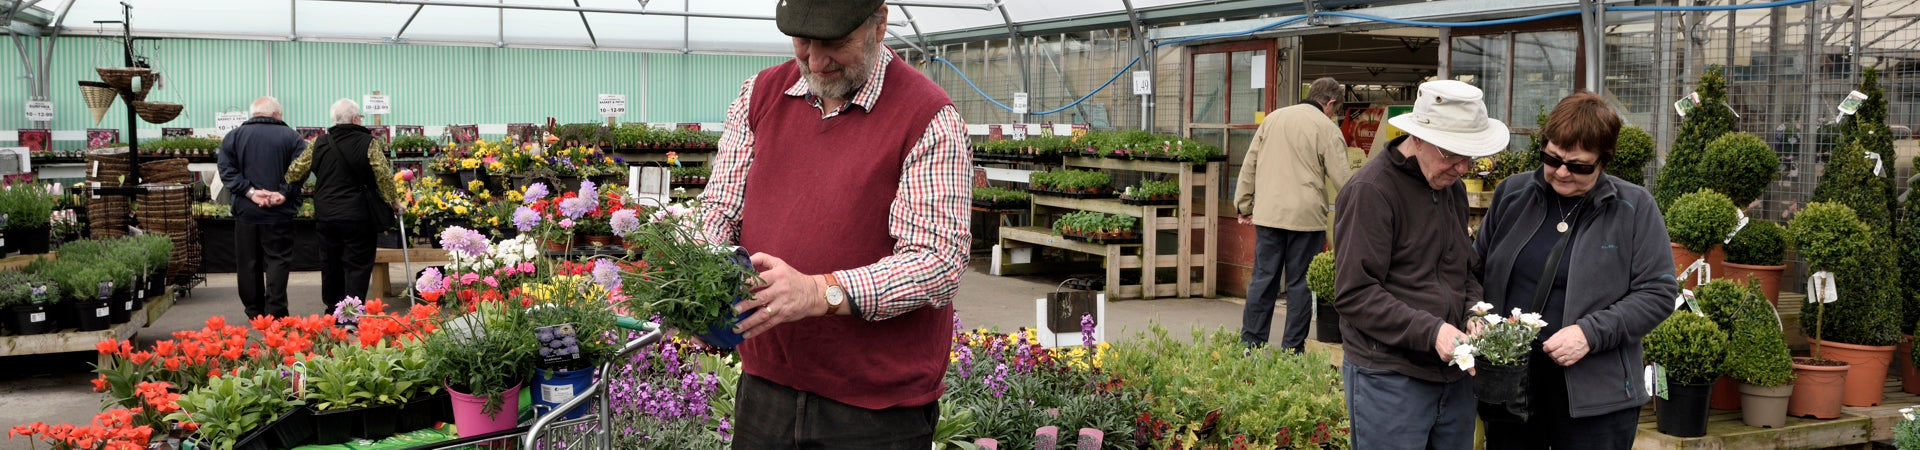 Covered plant sales area at Carr Farm Garden Centre, Wirral